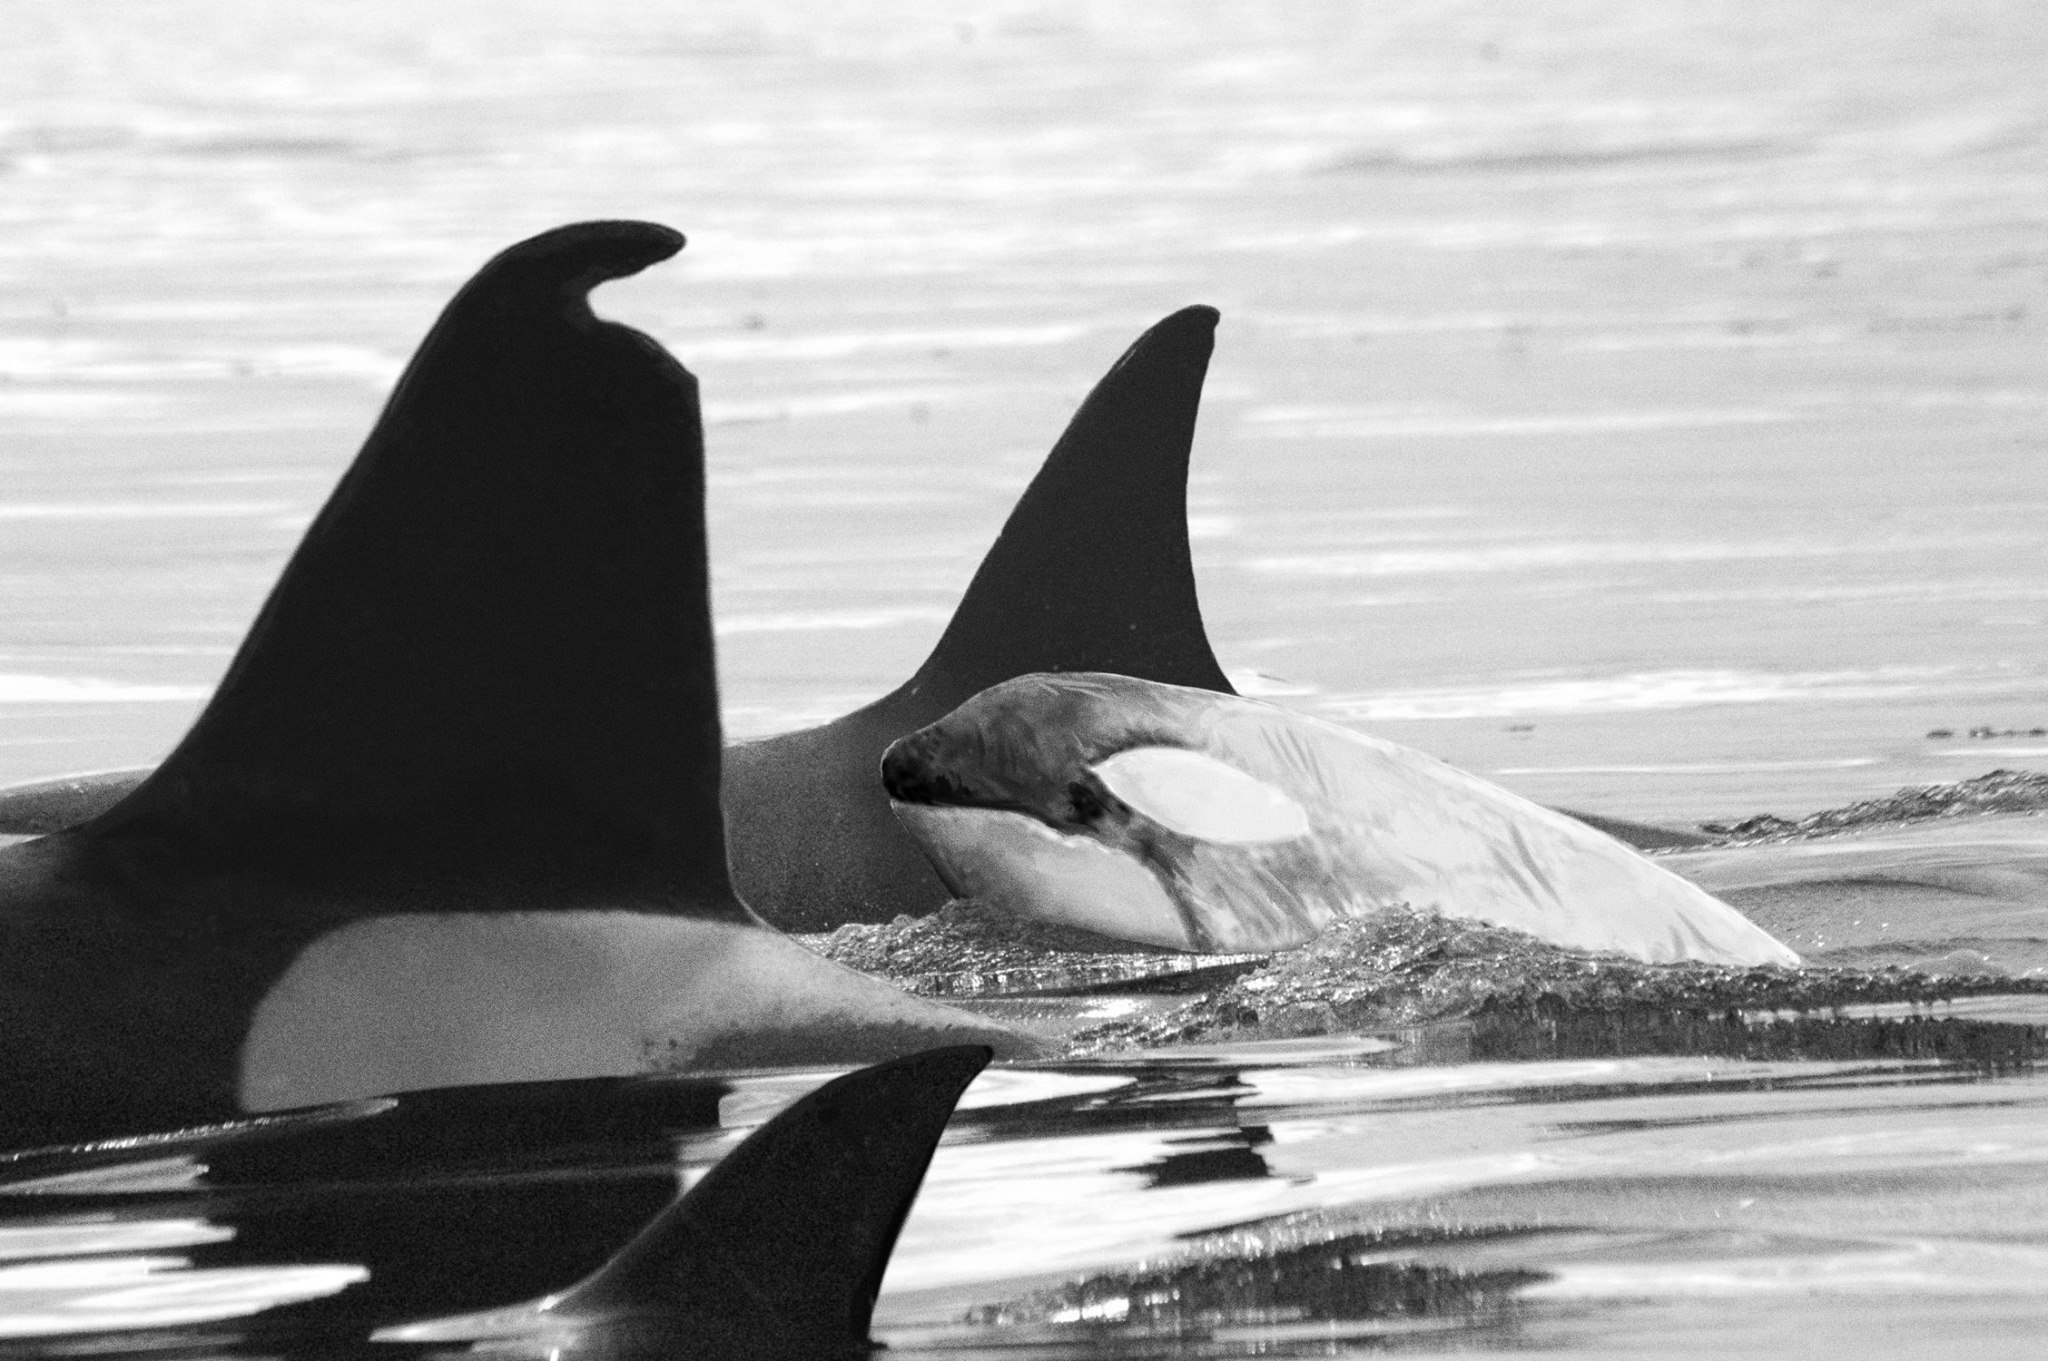 White Killer Whale SpottedOnly One in the World